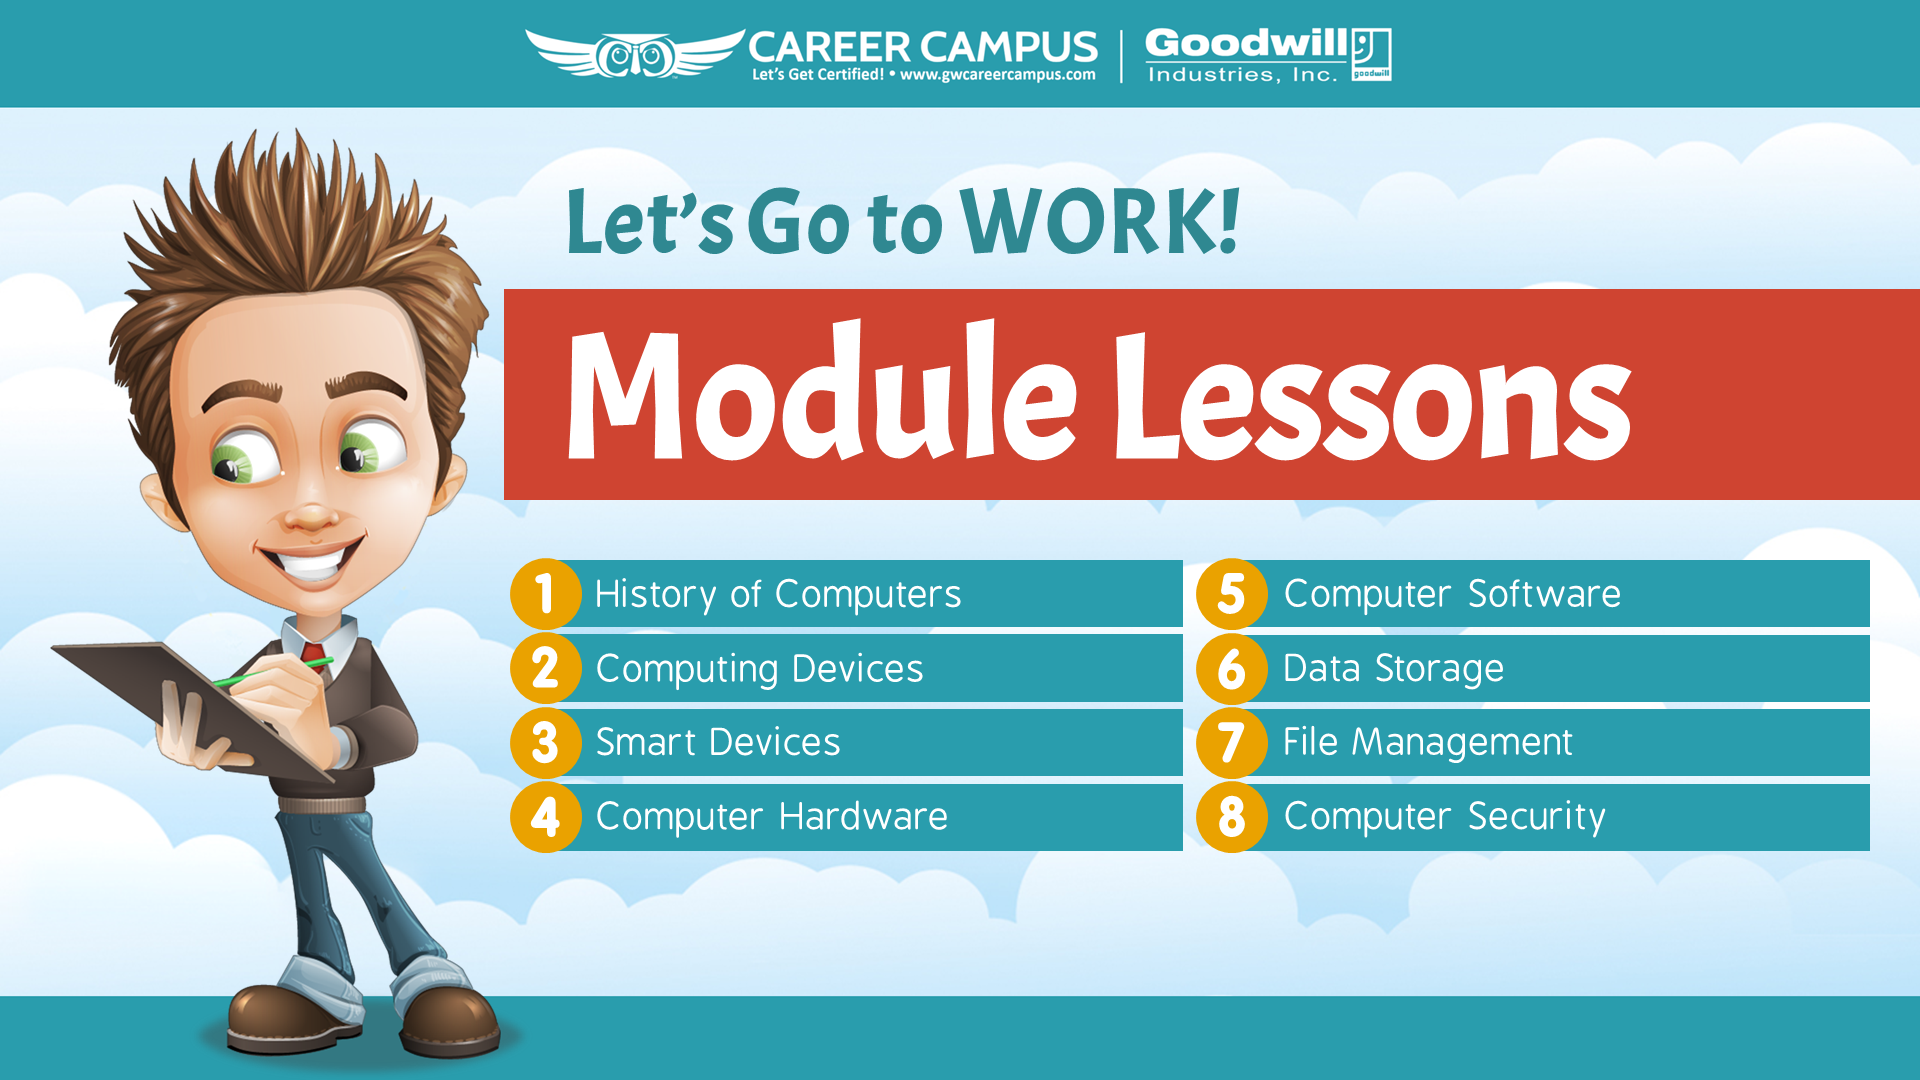 Step 2 - Purchase one or more $10 modules or a bundle of modules from our list of Courses